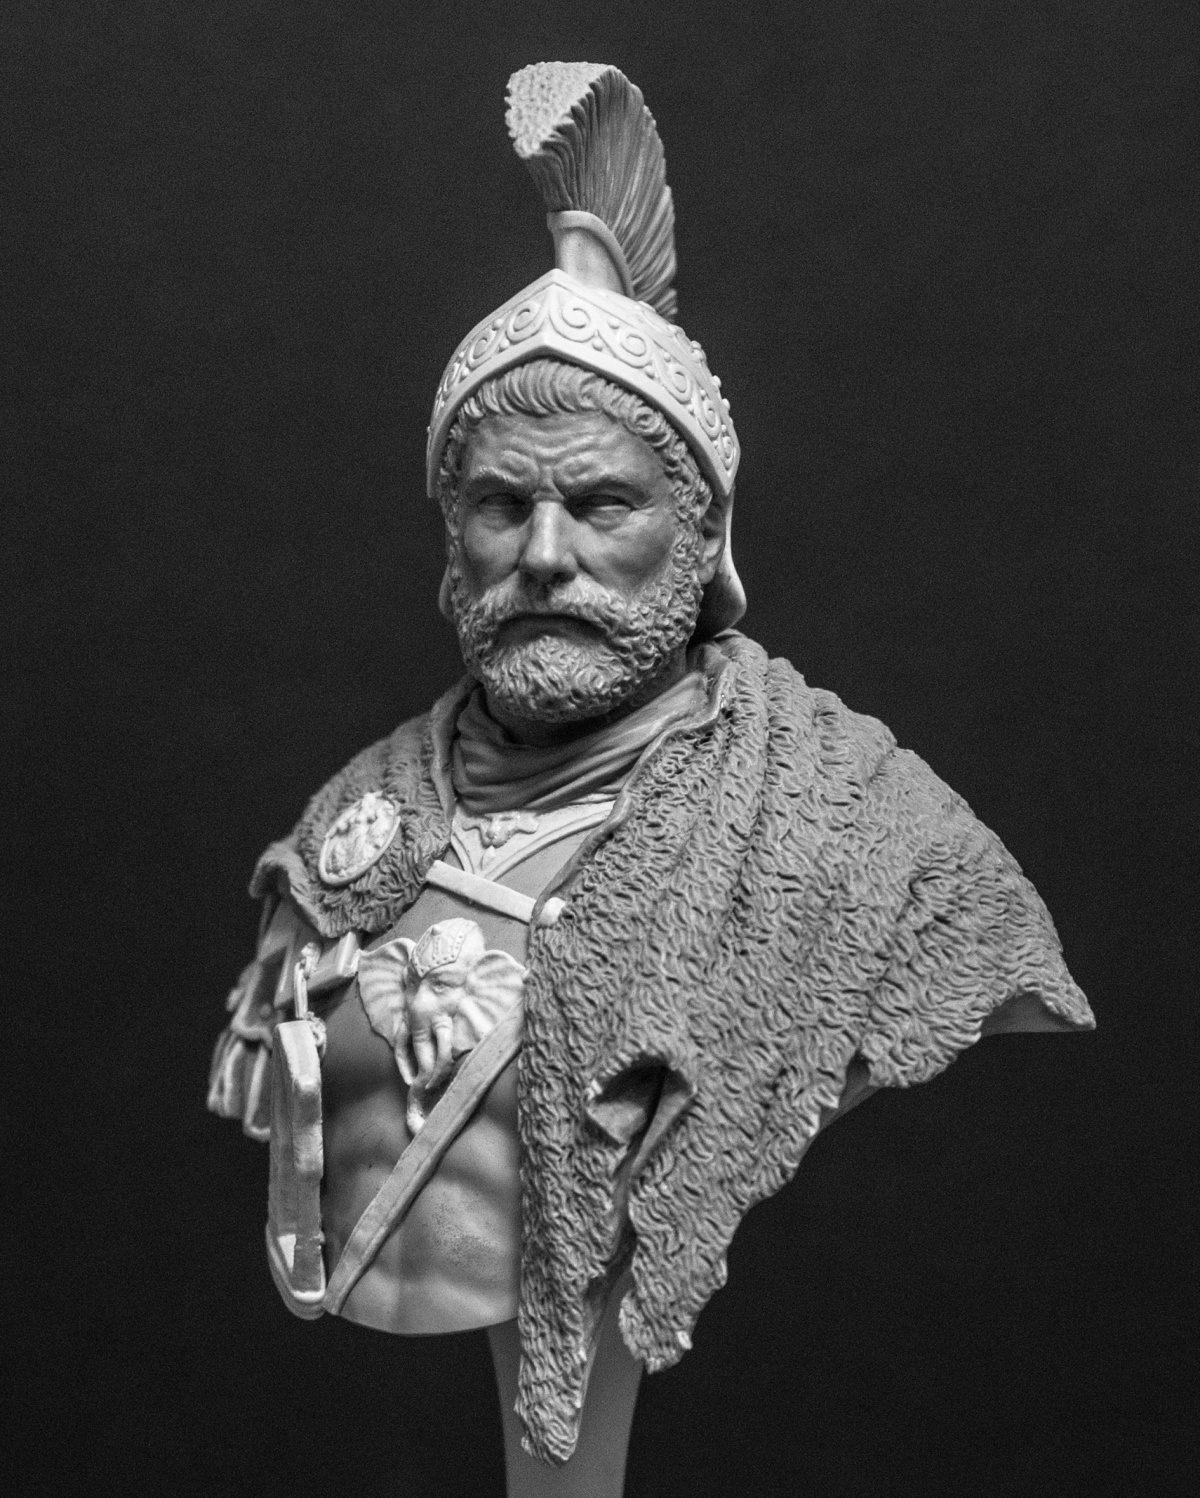 hannibal barca Top 10 facts about hannibal barca hannibal barca was the one of the greatest military general of ancient world widely known for his military strategy.